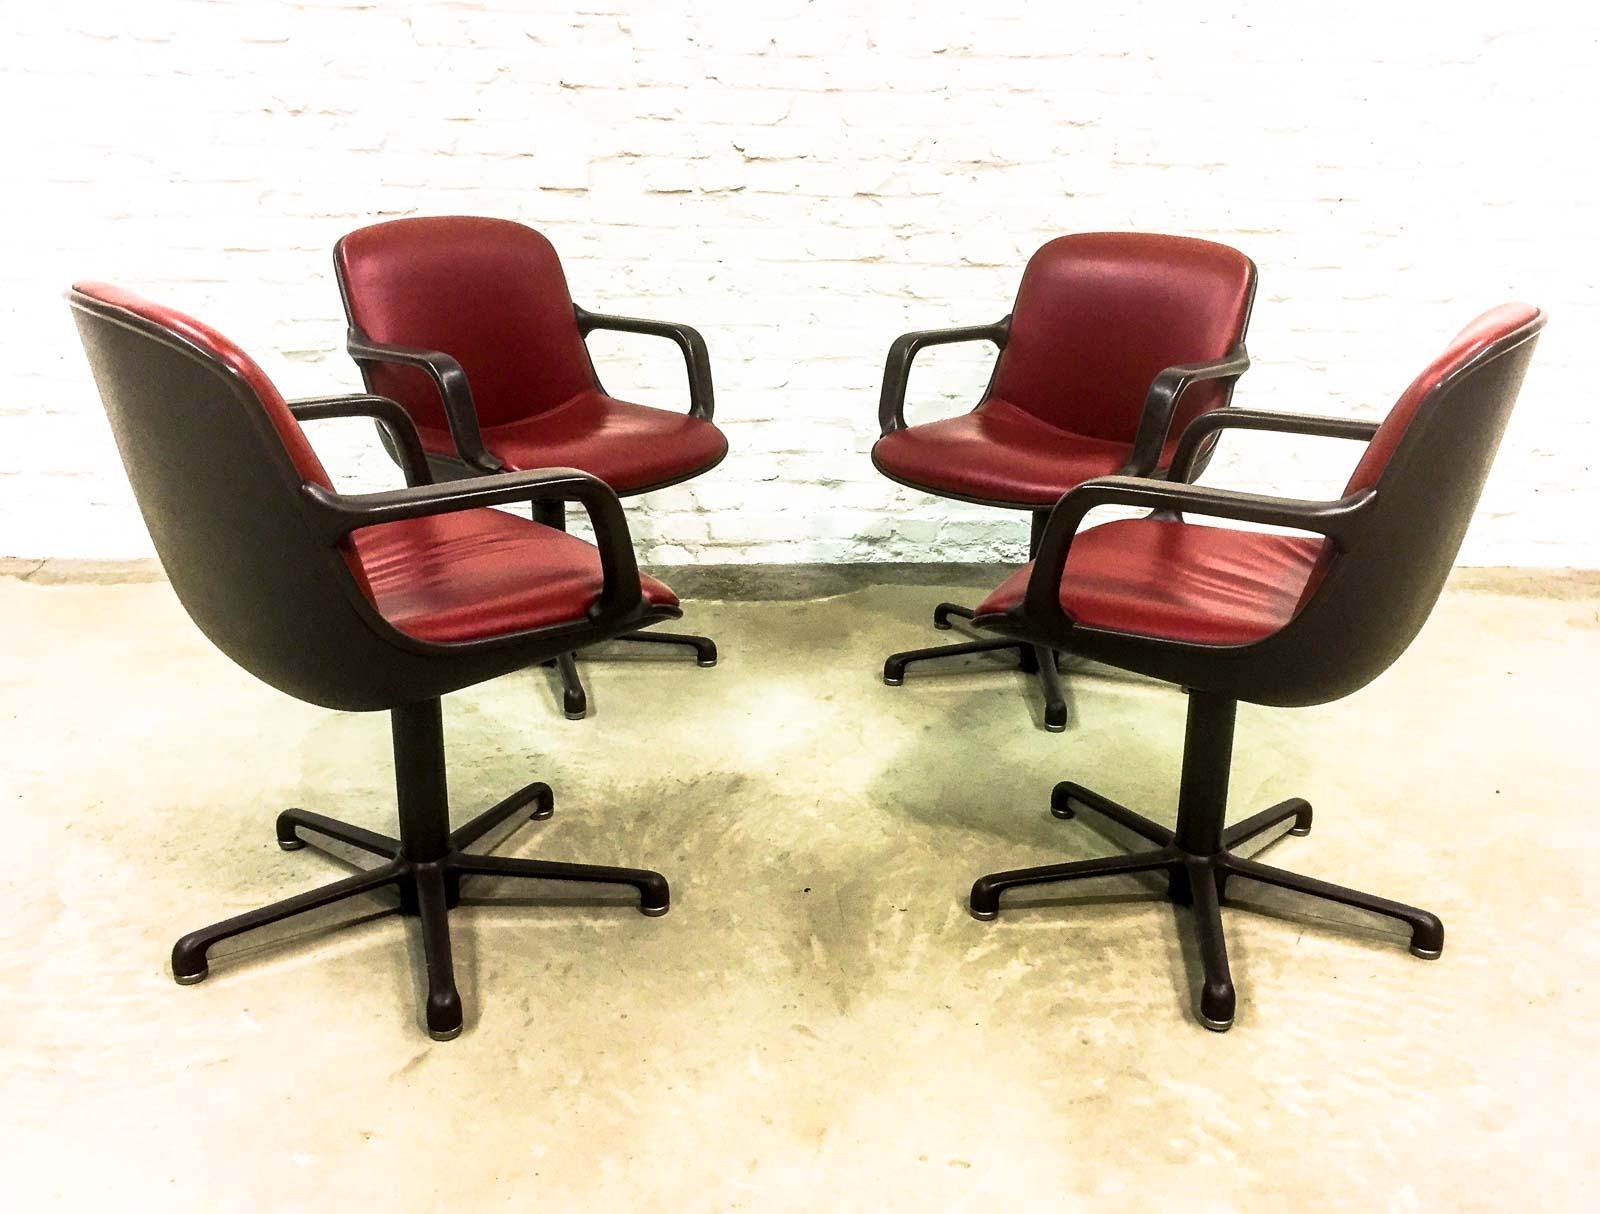 Set of 8 Mid Century Burgundy Red Leather Executive Chairs by